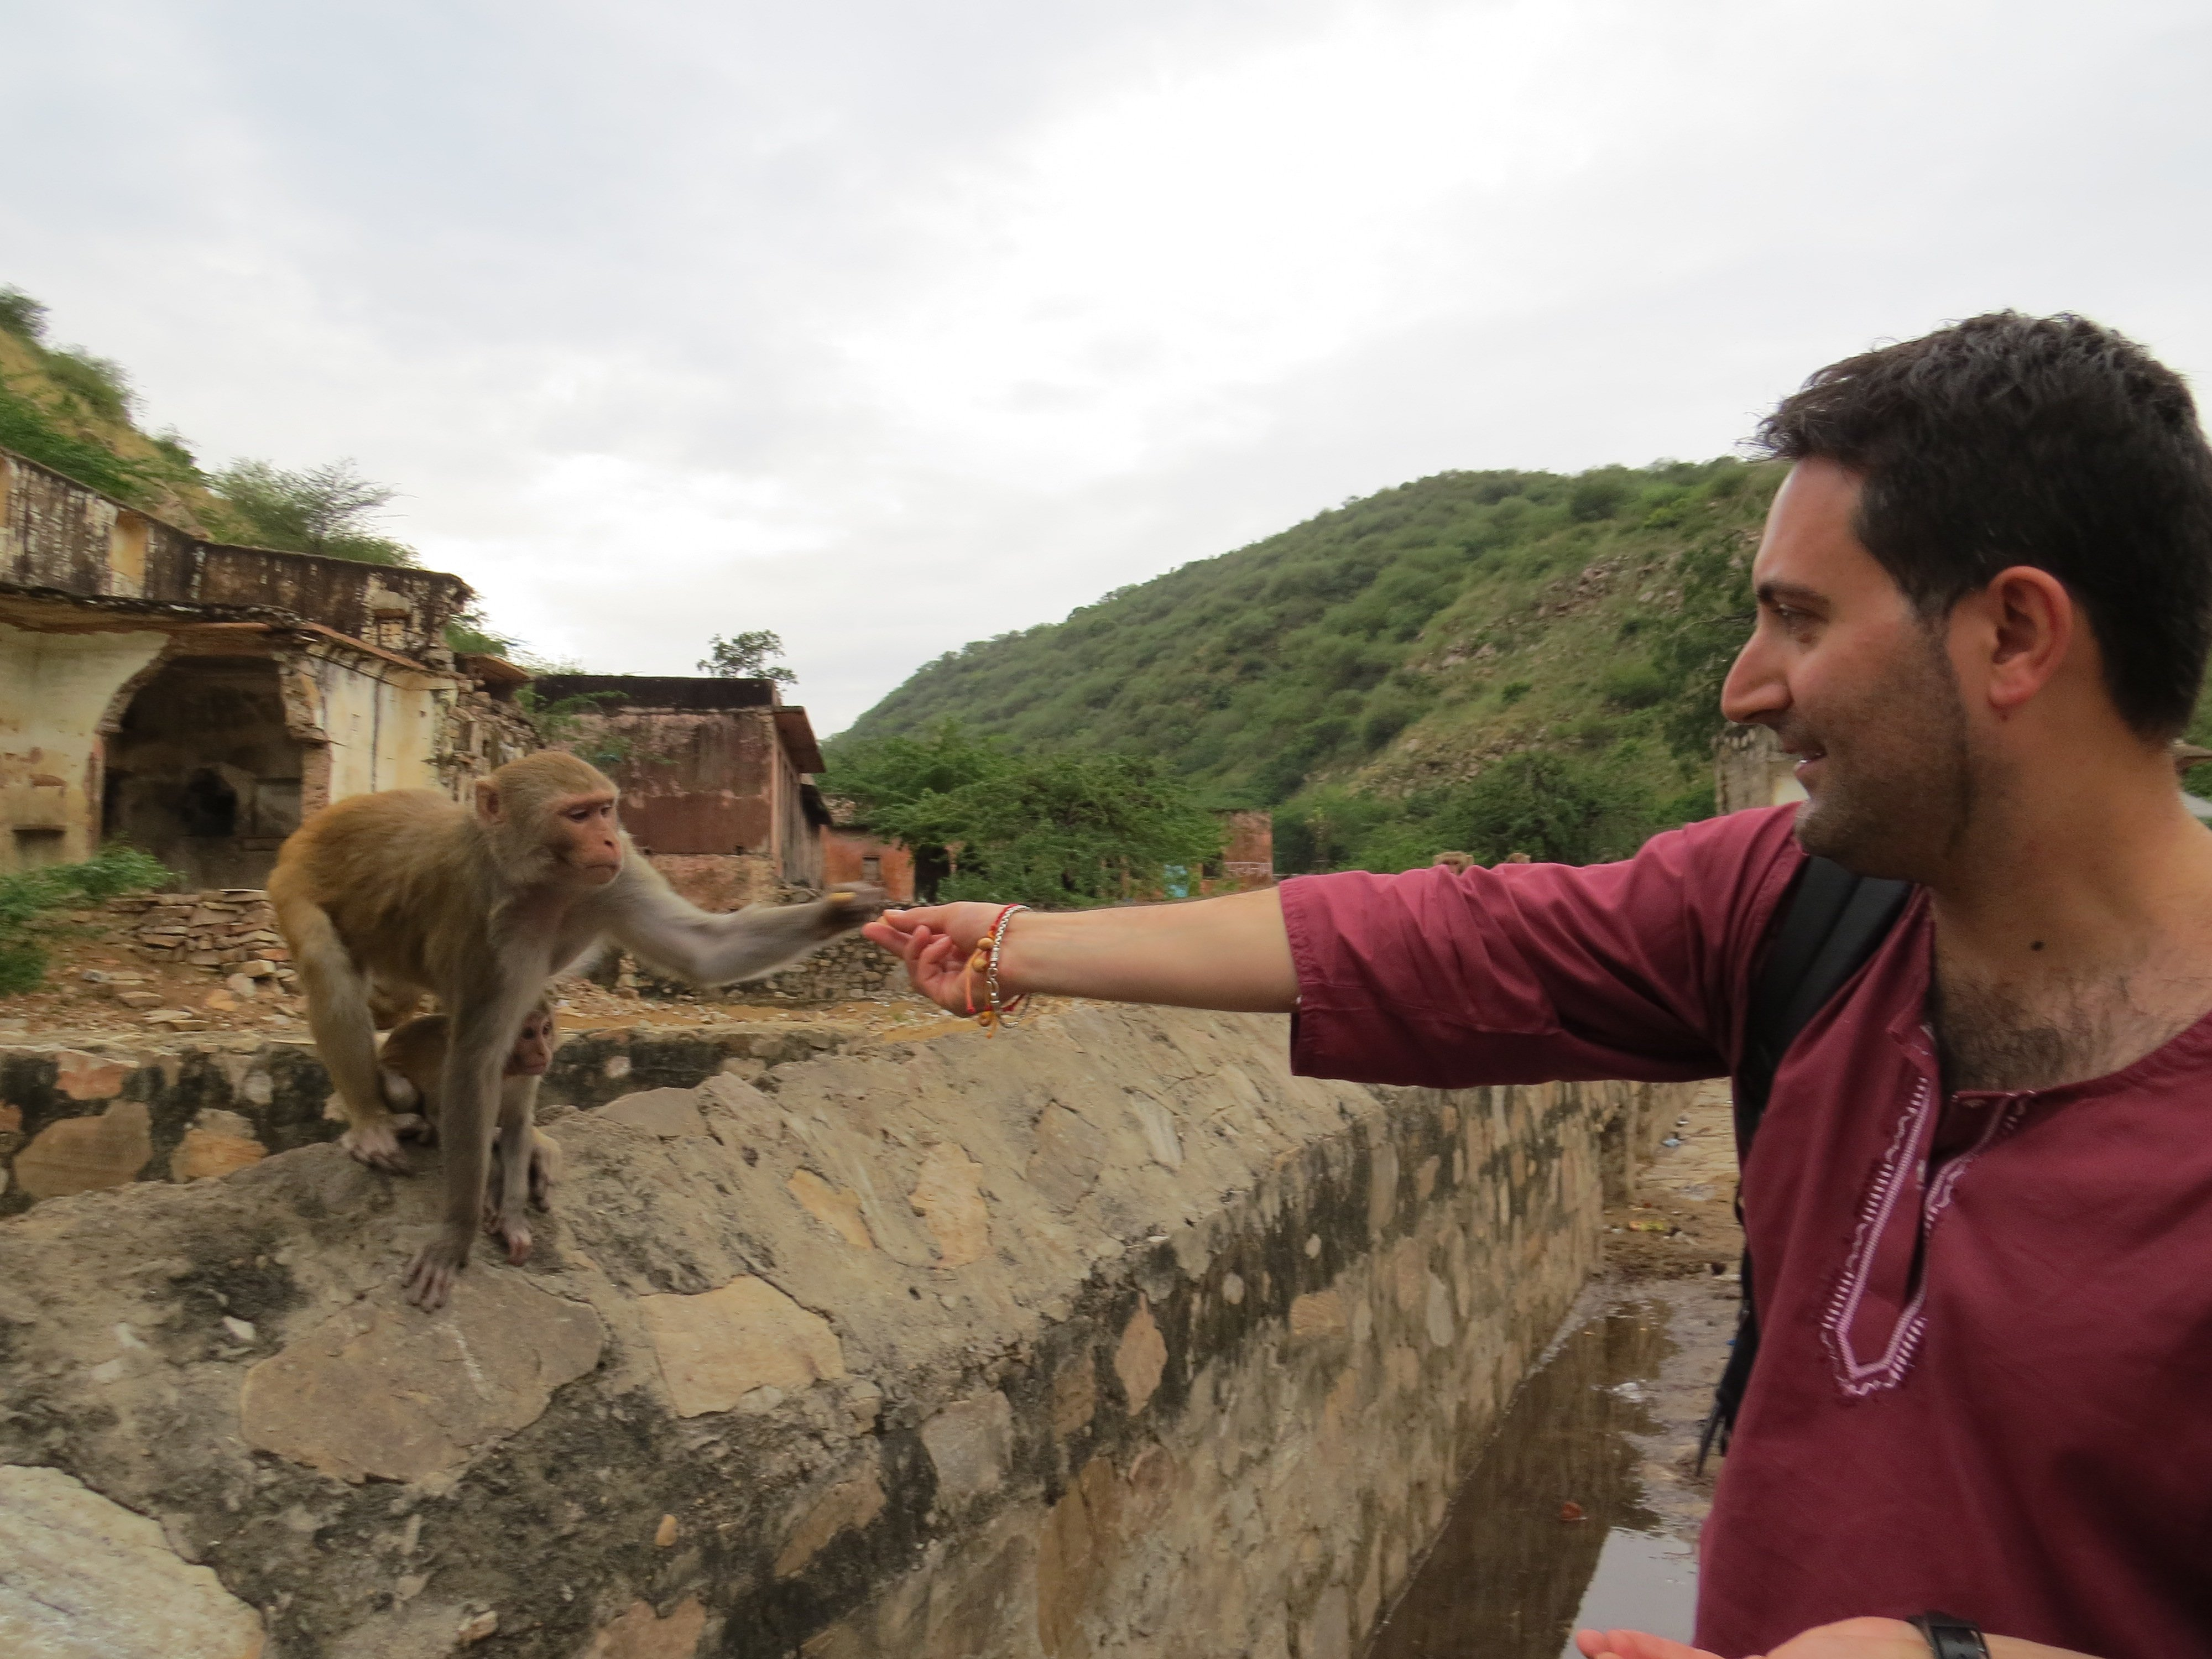 Me feeding a monkey and its baby